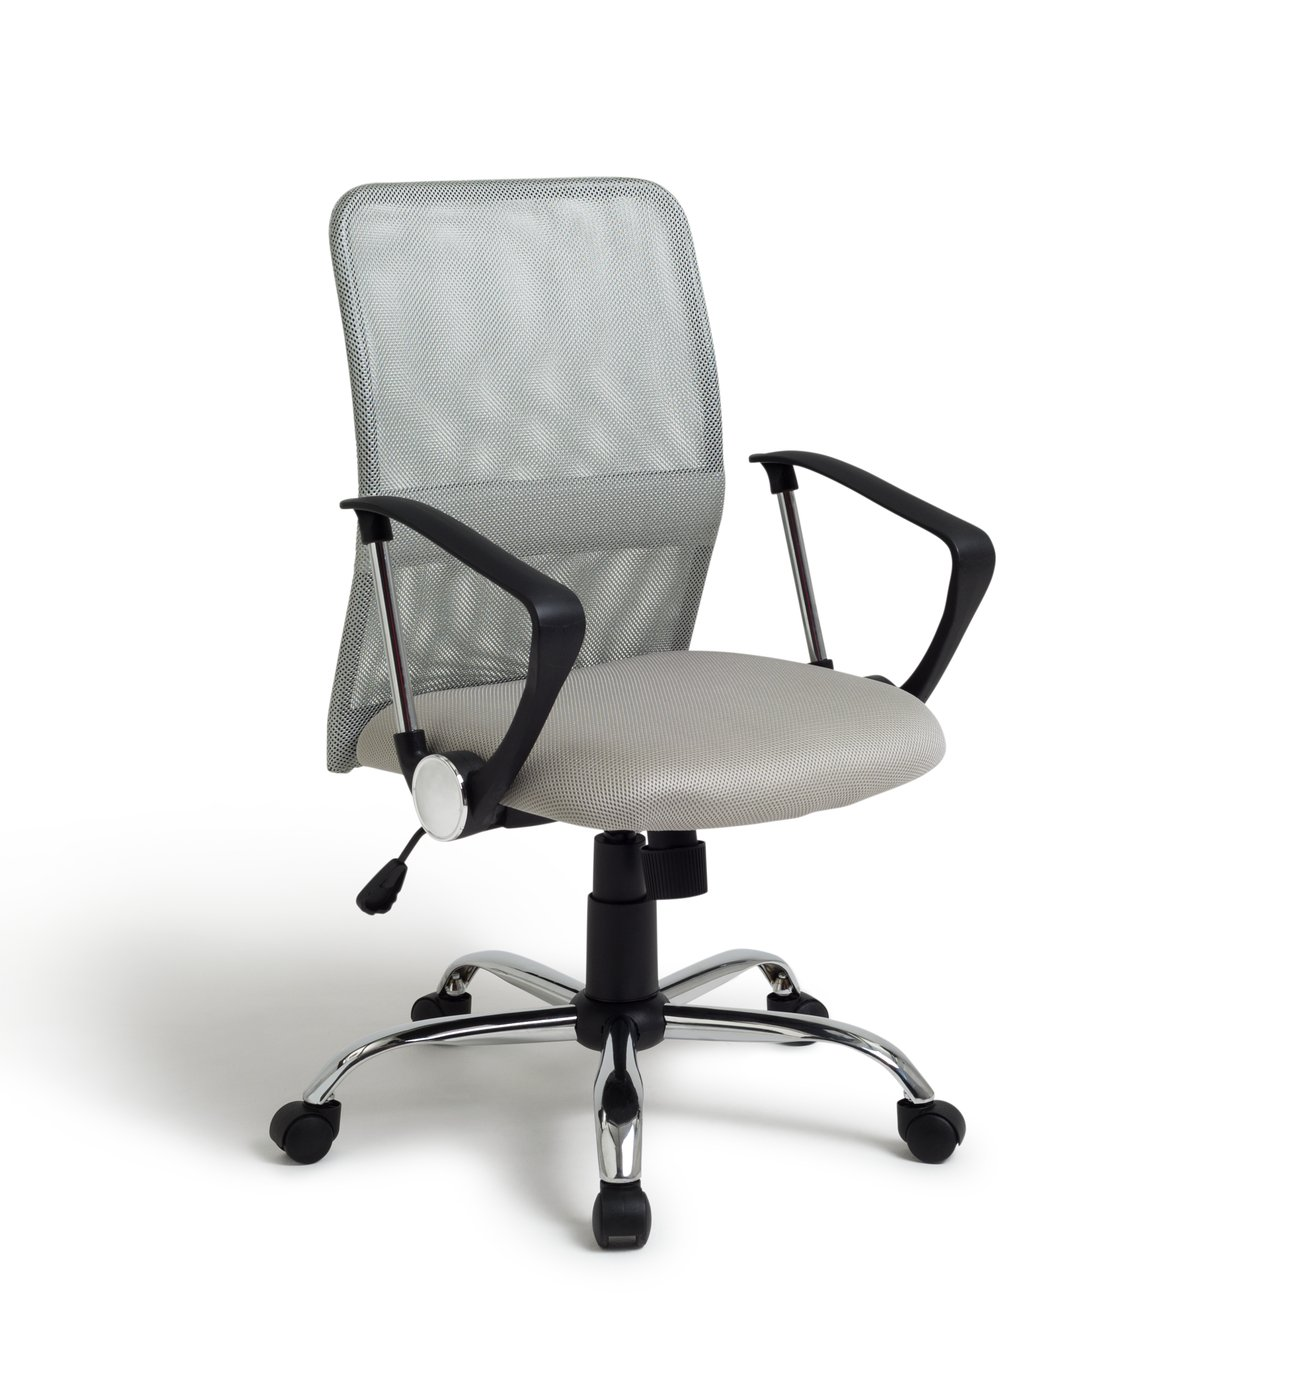 Argos Home Mesh Mid Back Adjustable Office Chair